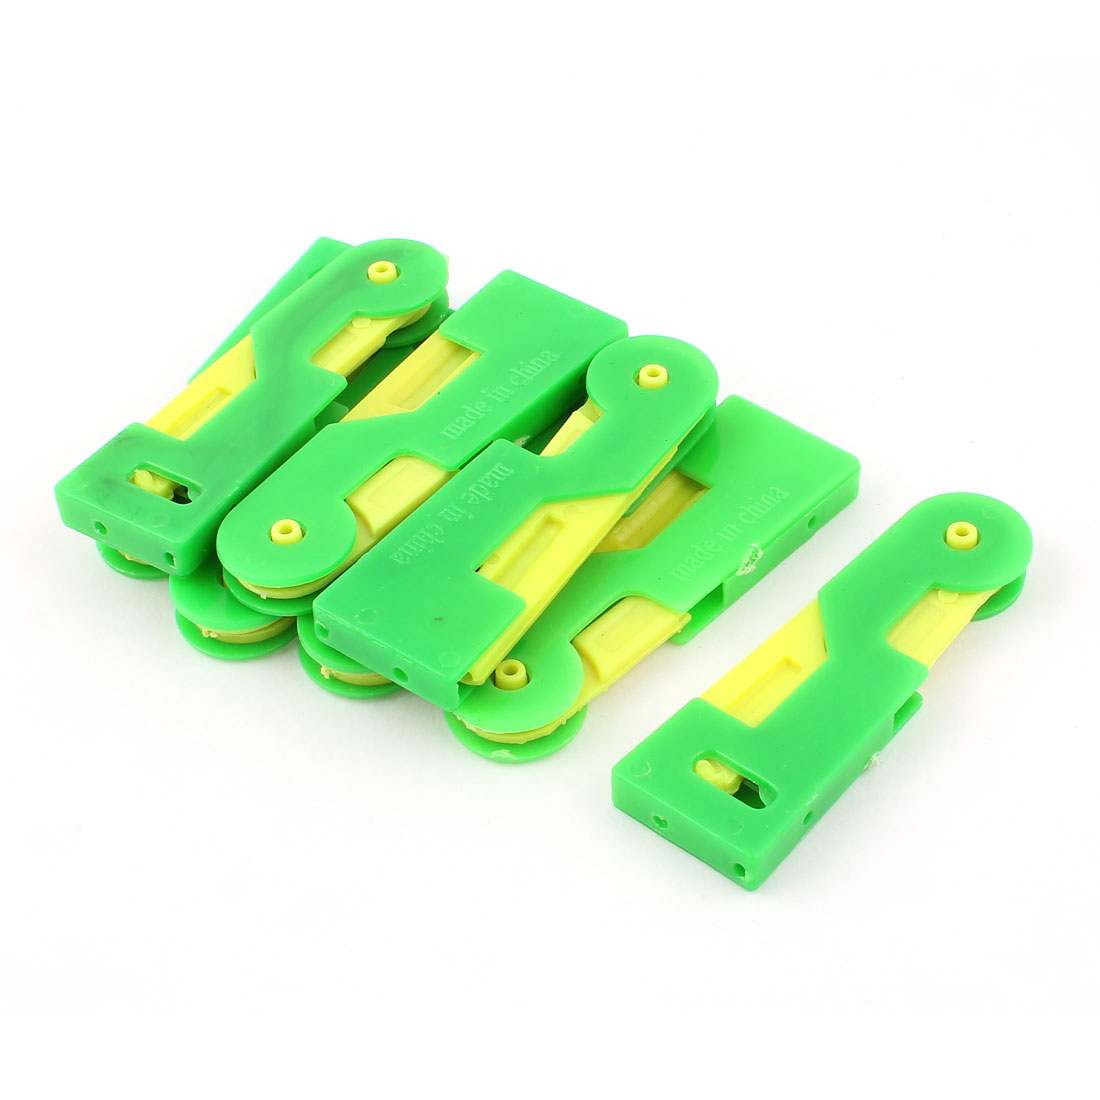 Elder Stitch Sew Hem Automatic Needle Threader Thread Guide Green Yellow 8pcs